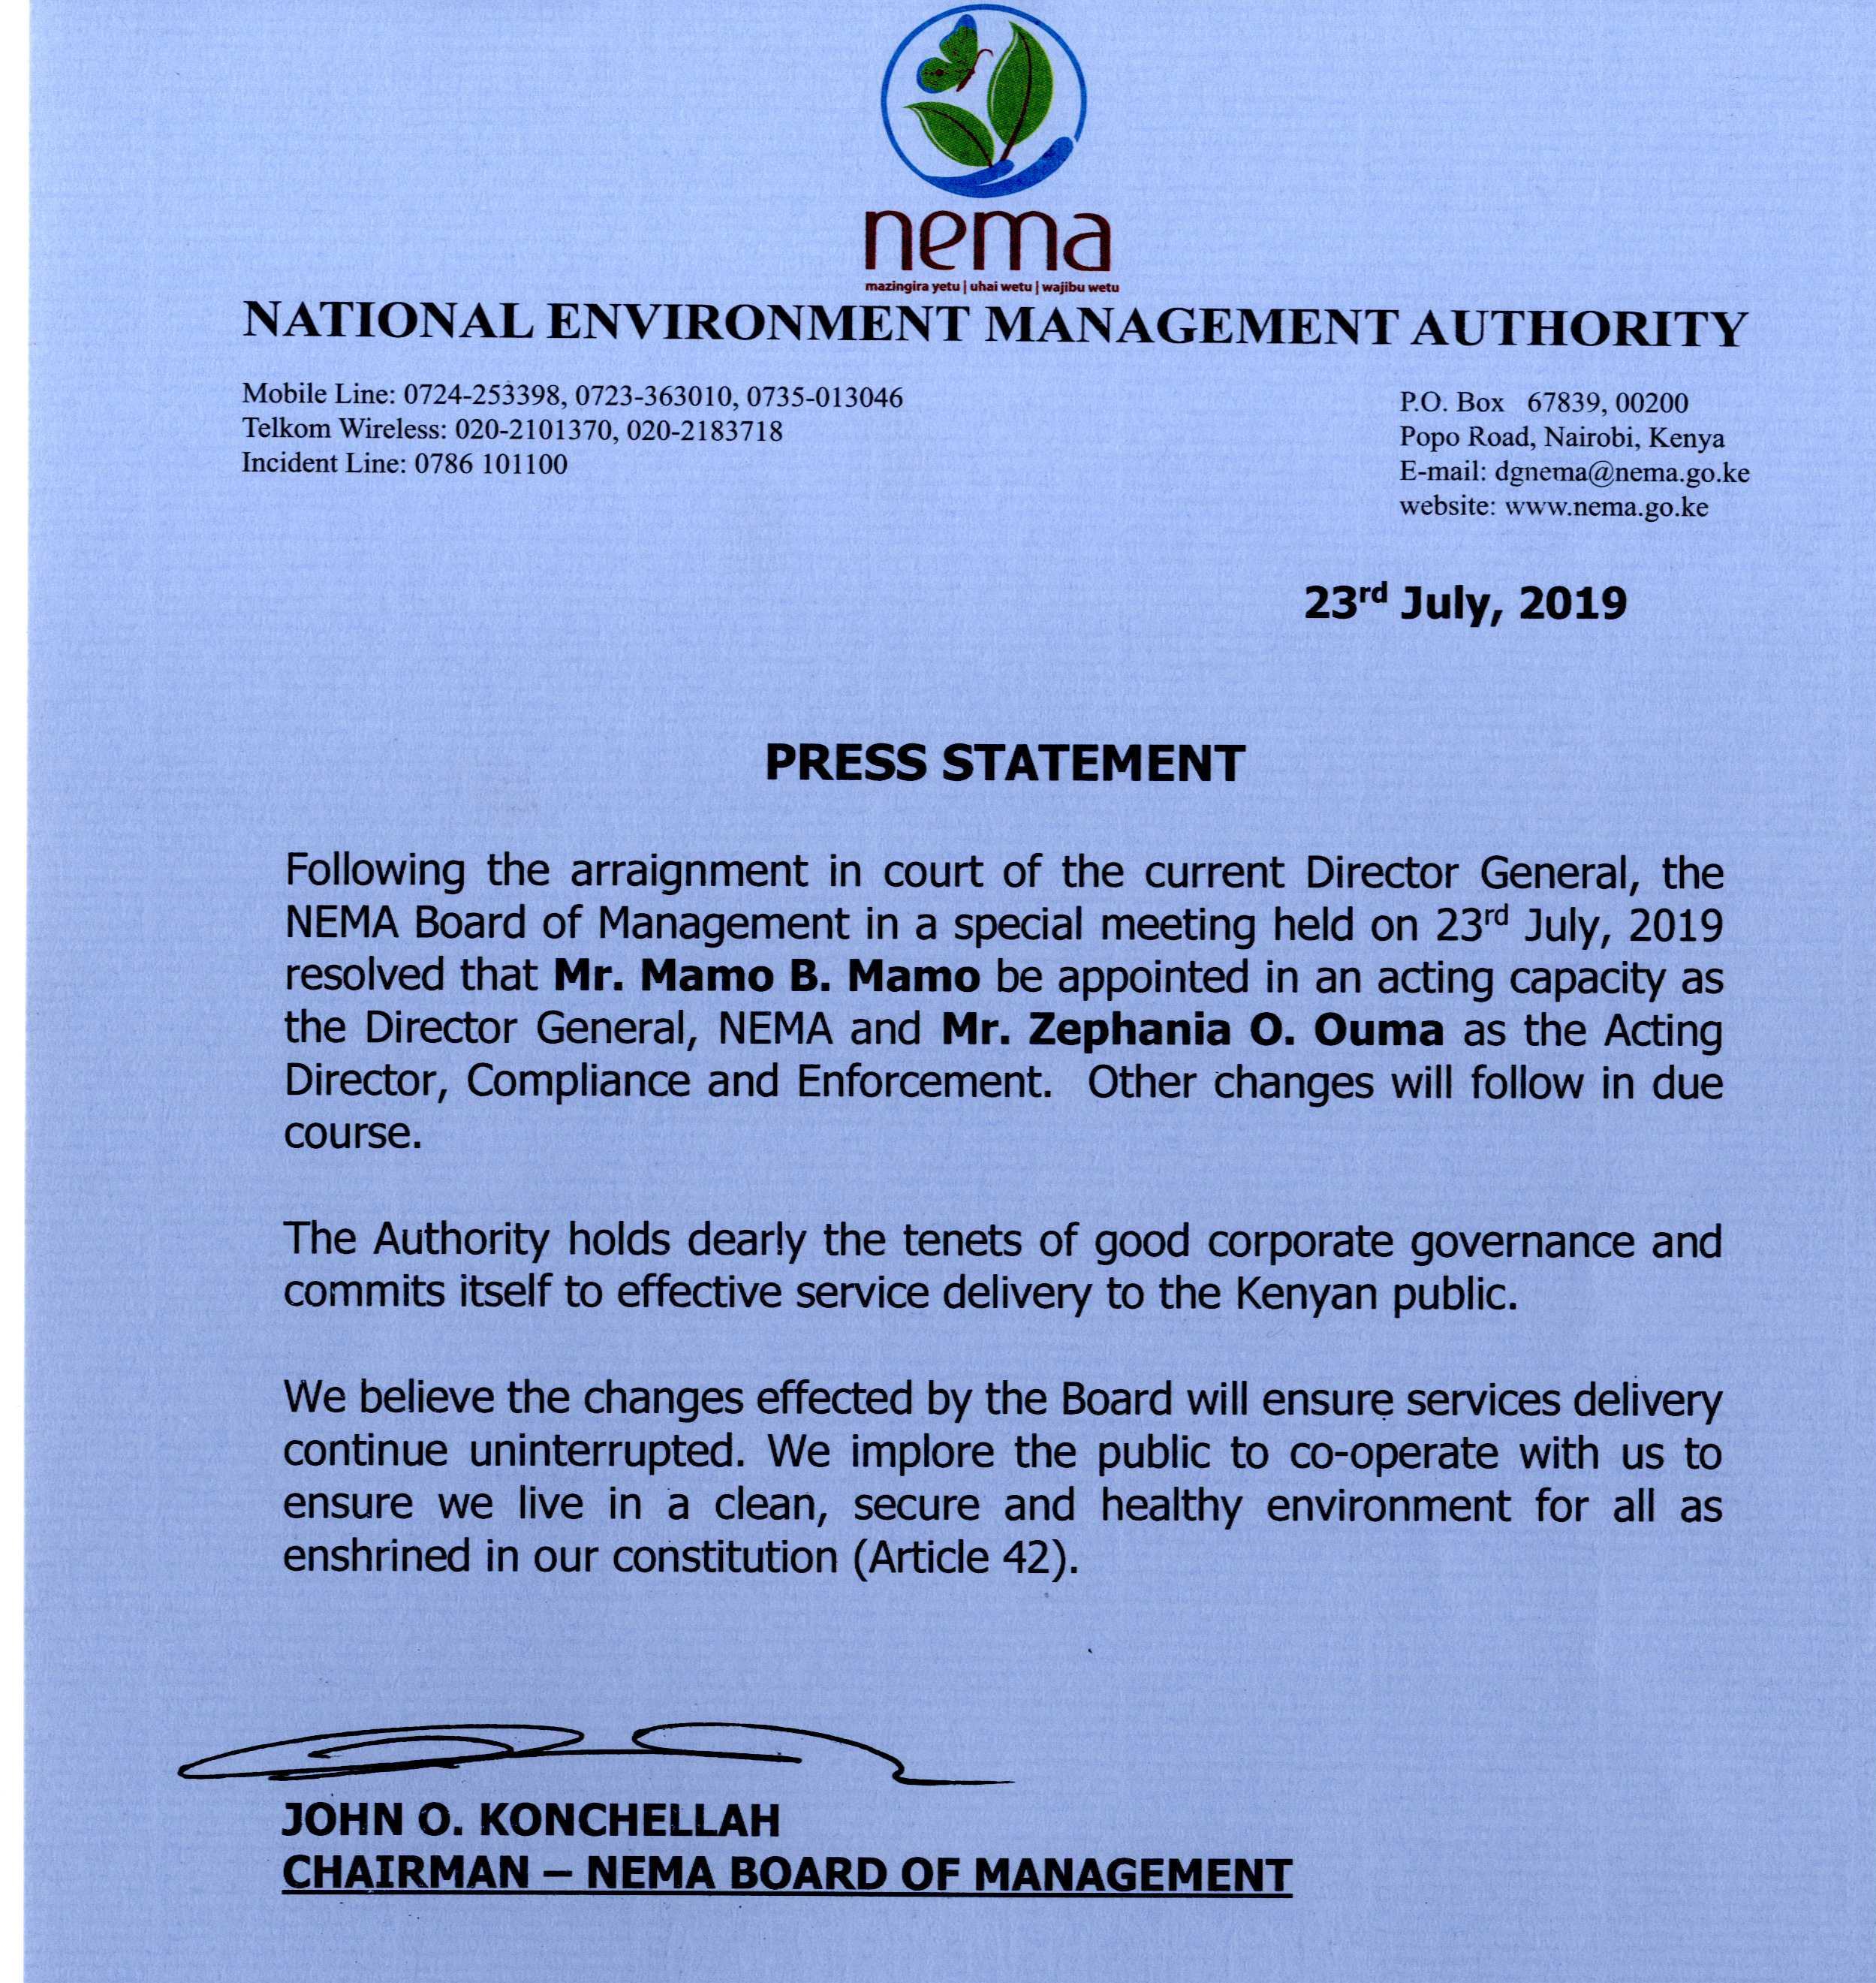 Nema press statement